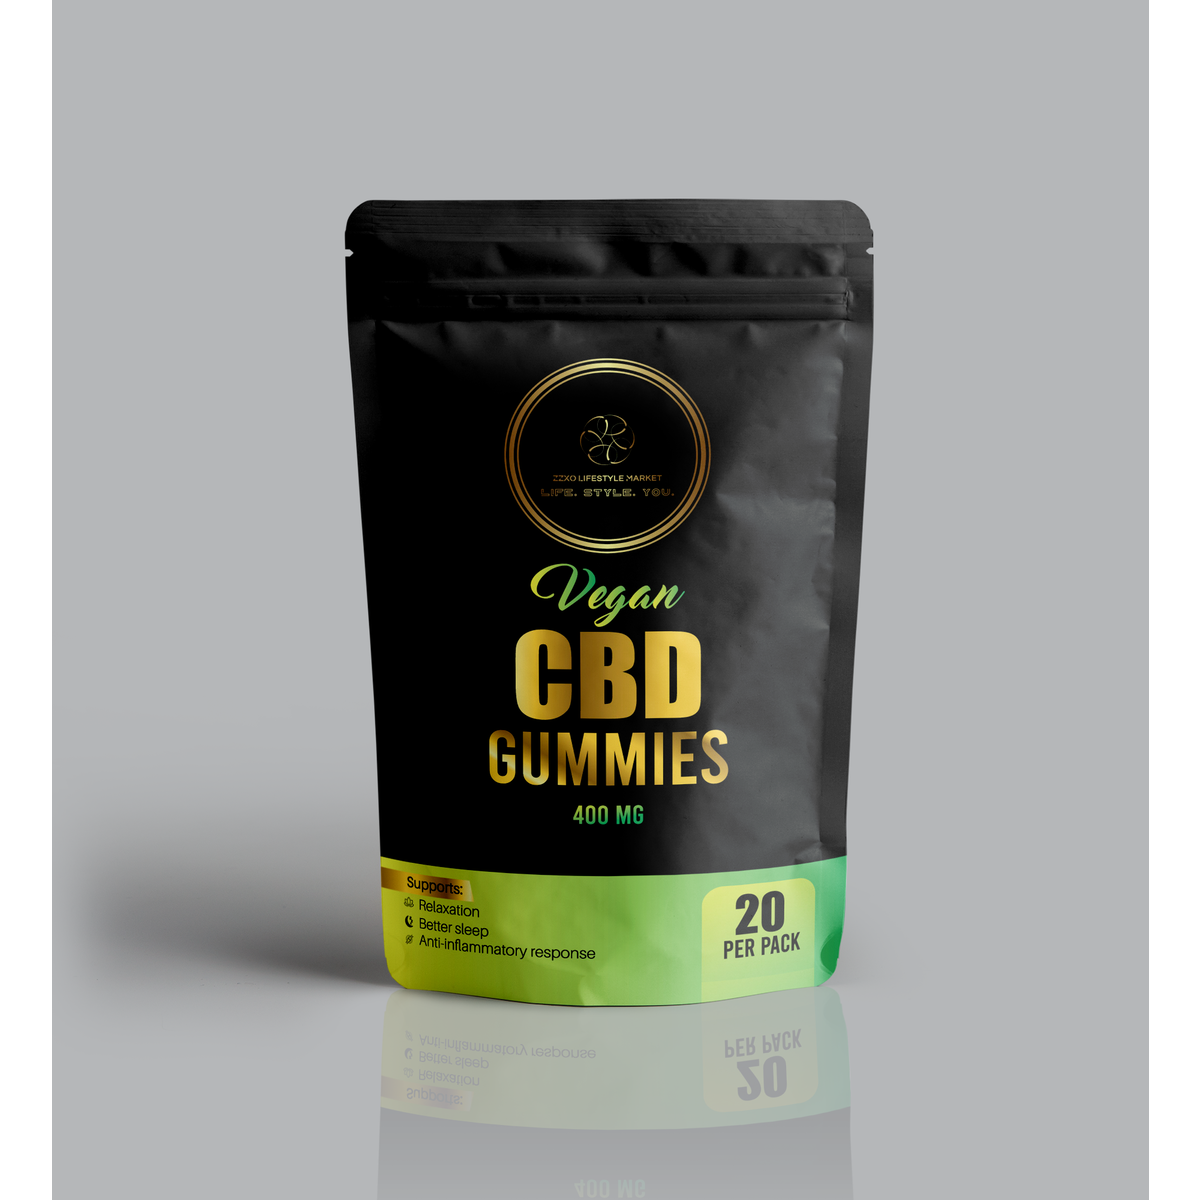 Vegan Hemp Gummies - 400mg